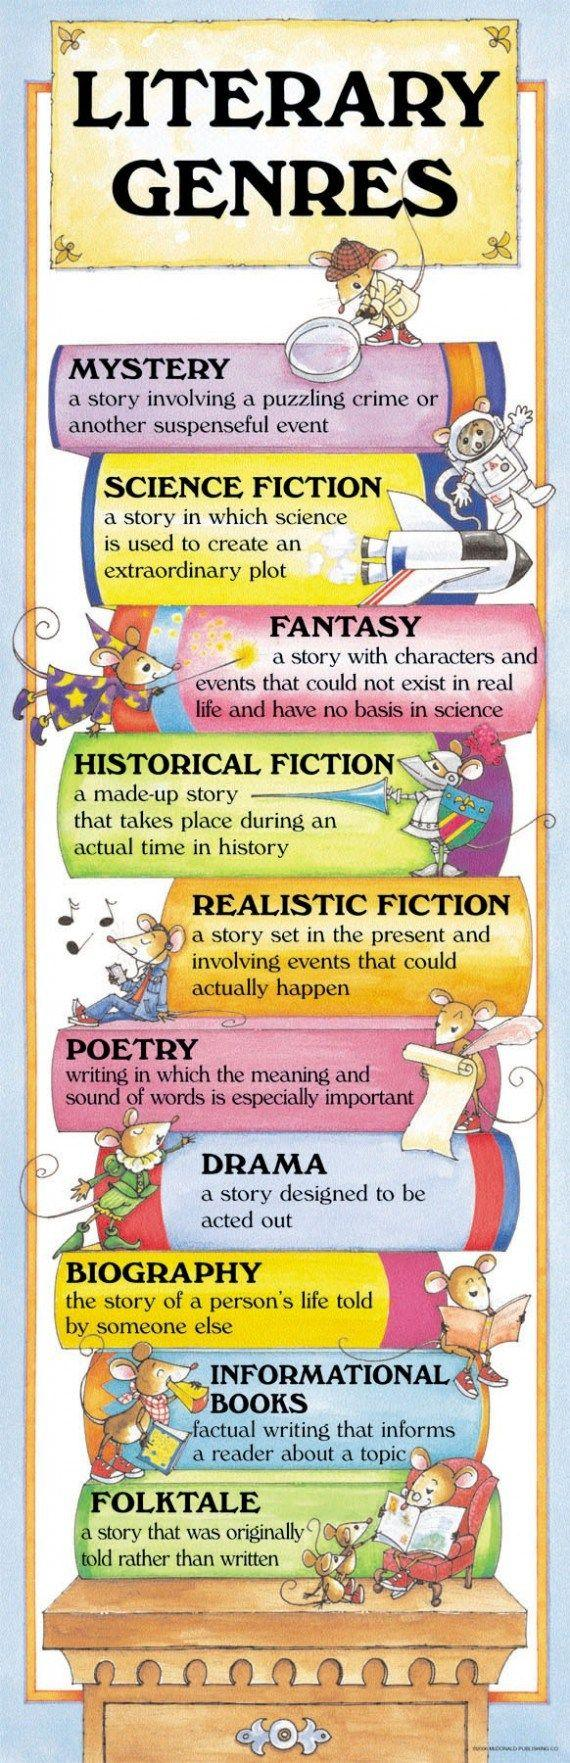 The Literary Genres Infographic